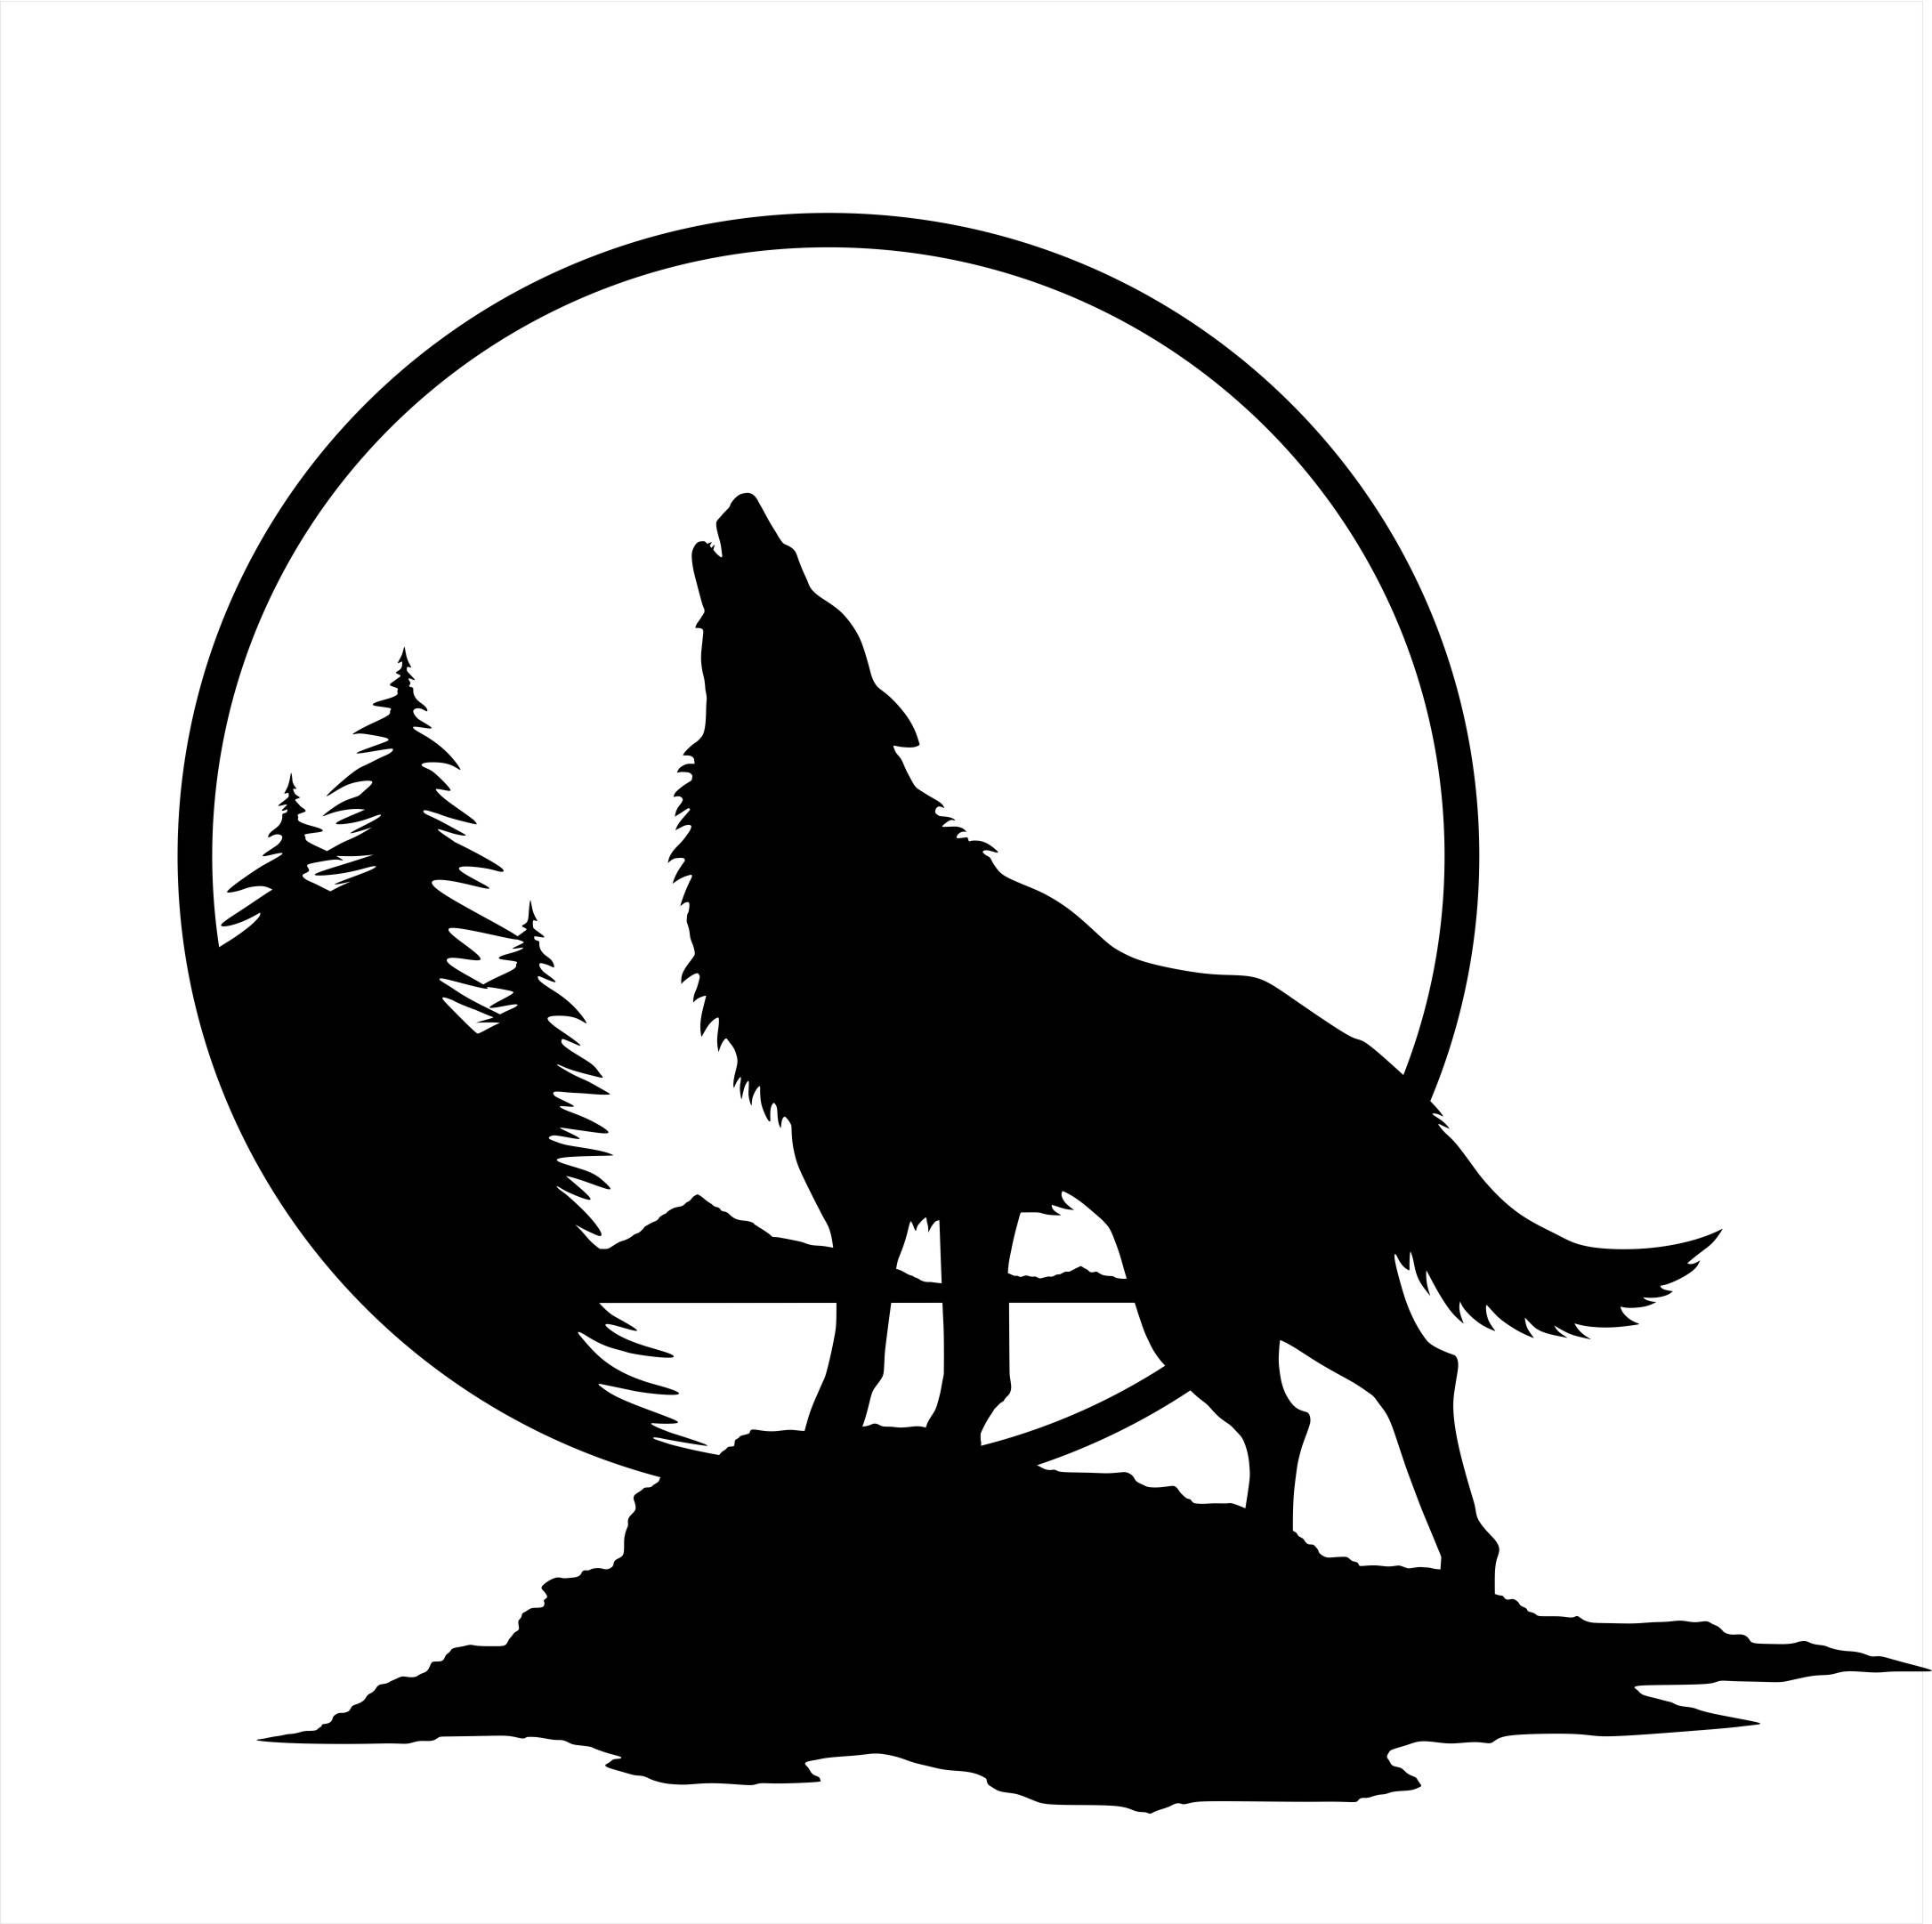 wolf howling at the moon drawing wolf howling at the moon drawing free download on clipartmag the at howling wolf moon drawing